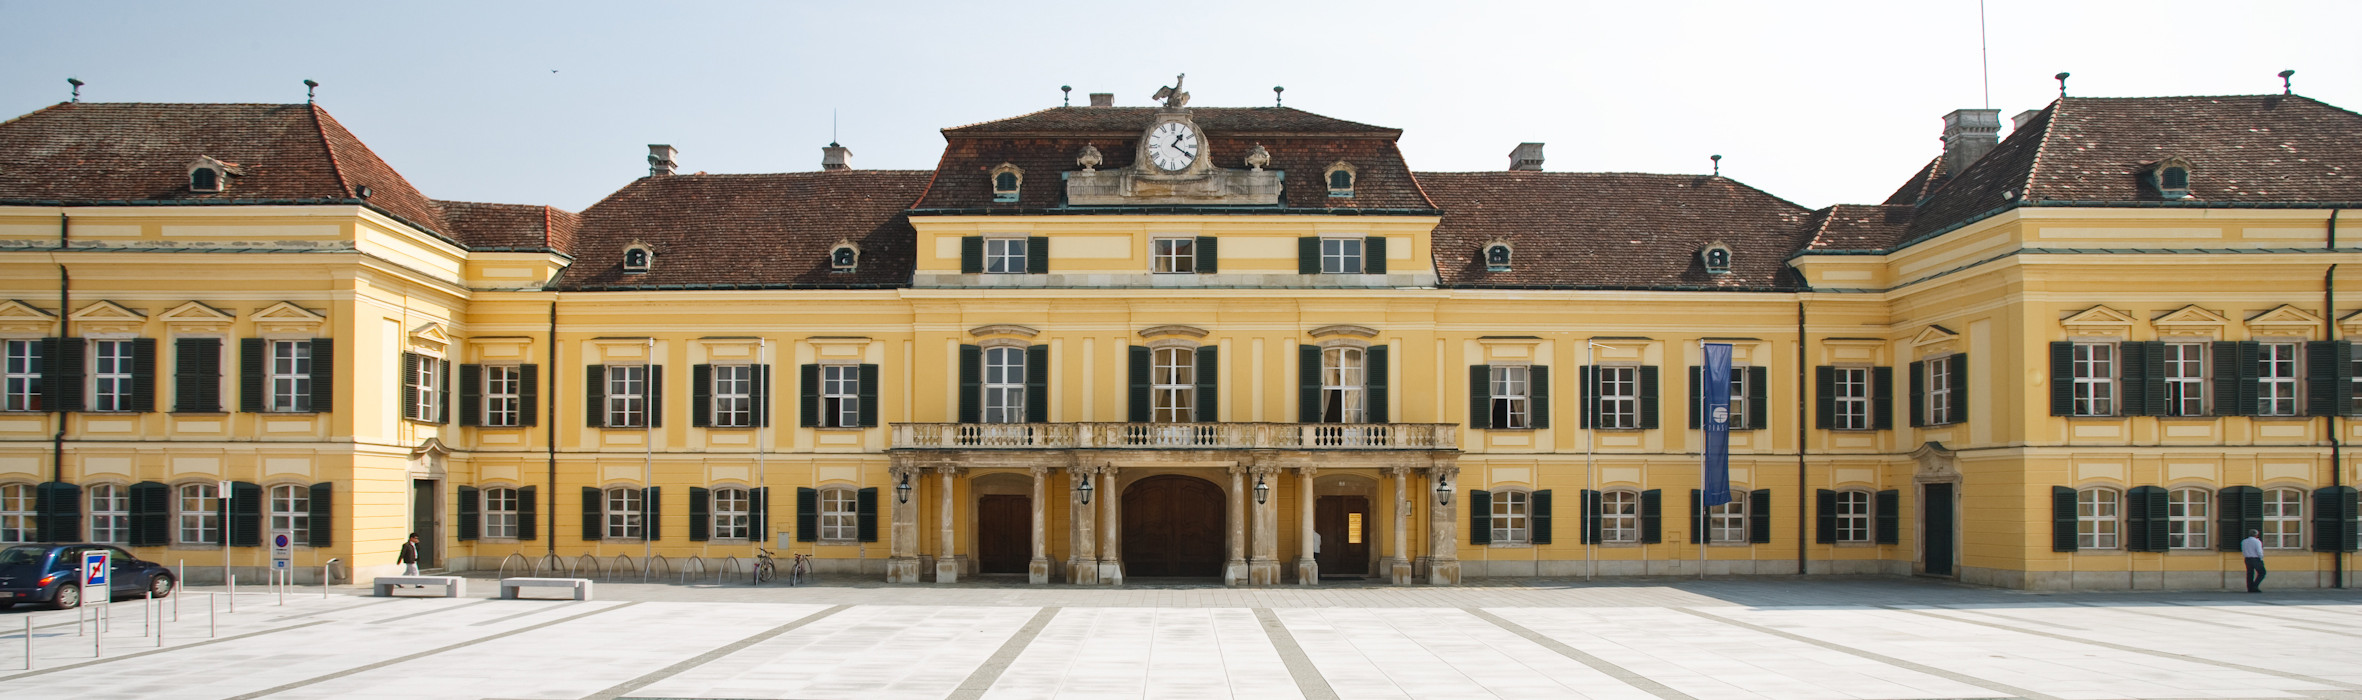 iTEM4 venue (source: http://www.iiasa.ac.at/web/home/about/whatisiiasa/location/location_schloss_laxenburg.html)